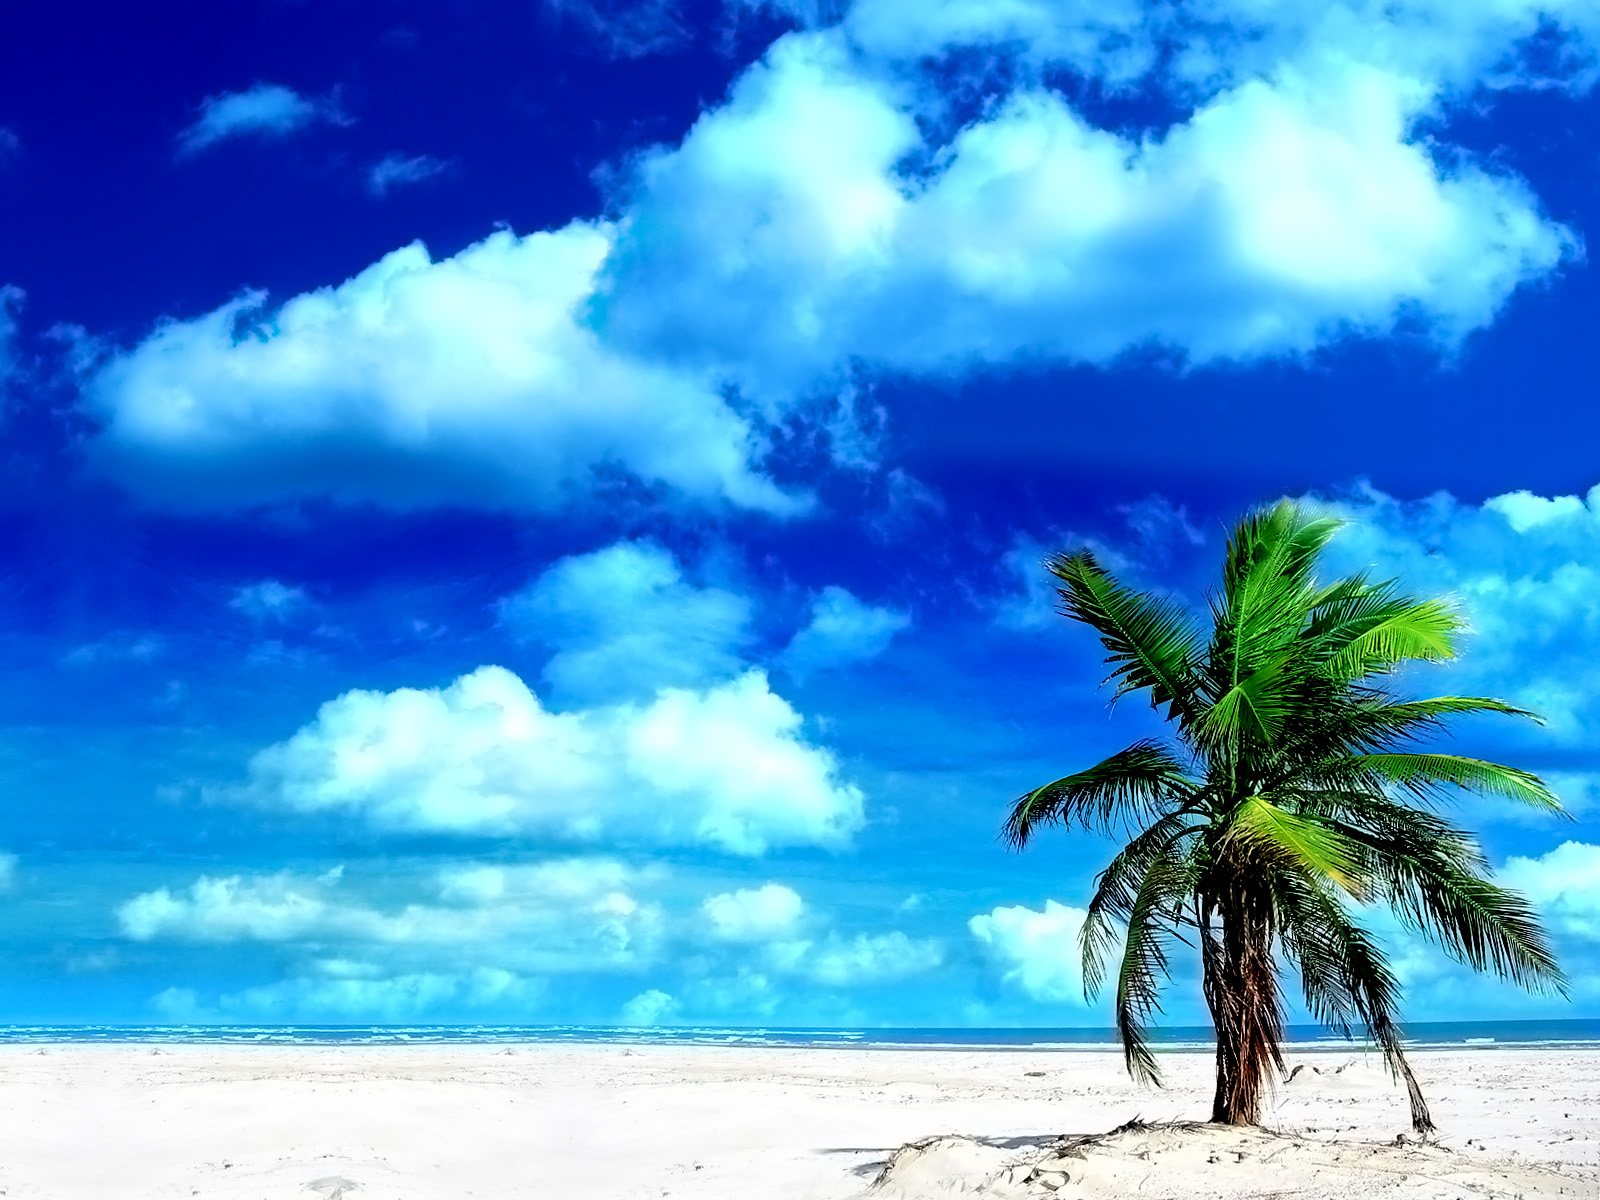 http://4.bp.blogspot.com/-5D6Ik1t2JMY/TwWJsO9vs6I/AAAAAAAAAIo/xgPC05rmRAM/s1600/Beach+Wallpapers+HD+4.jpg